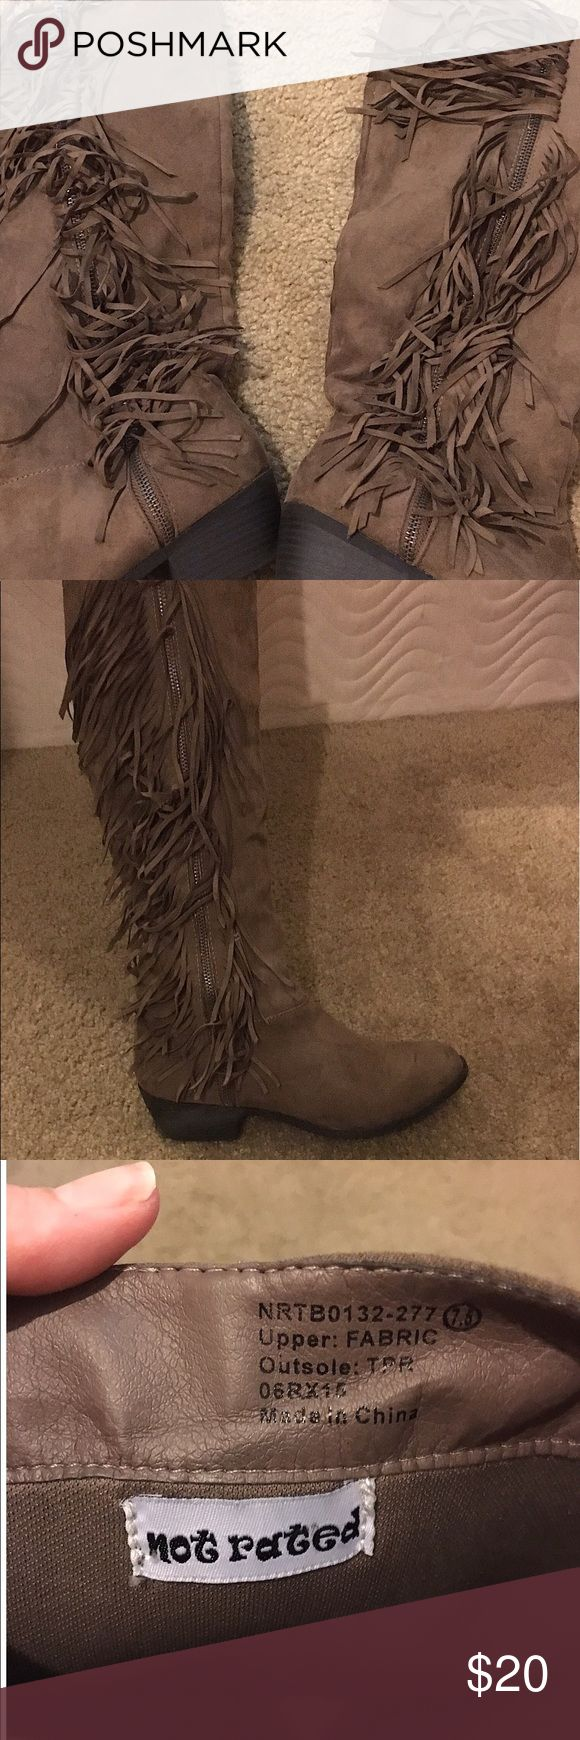 Not Rated Boot Not Rated fringe Boot size 7.5 that is in like new condition. Brown colored with cute fringes that go up and down the zipper. There is a zipper on the other side of the boot to let you in and out of the boot easily. These are great worn with shorts or jeans. I love these boots! These were rarely worn (about 2-3 times) and are in like new condition. I bought them from Buckle. Not Rated Shoes Heeled Boots